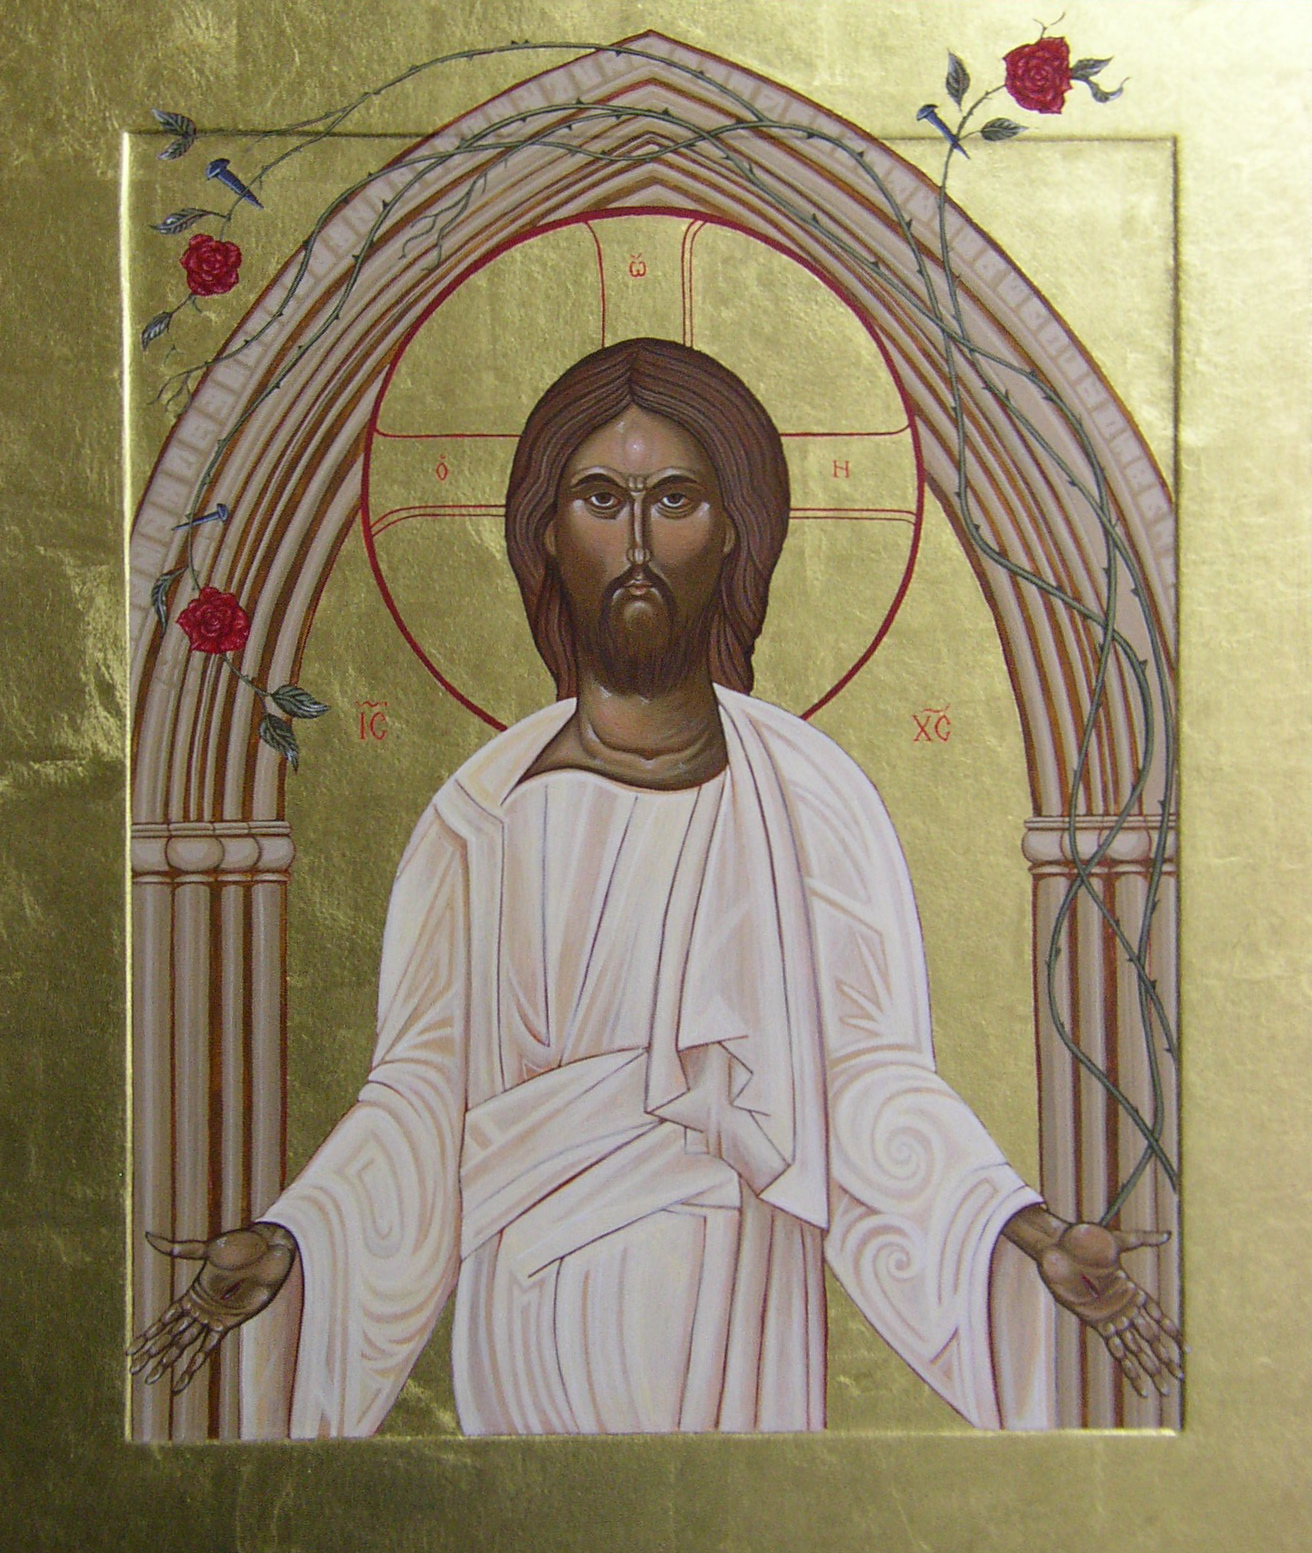 Regan O'Callaghan saint Saviour's Pimlico, London church, religious icon, egg tempera, gold leaf, church entrance